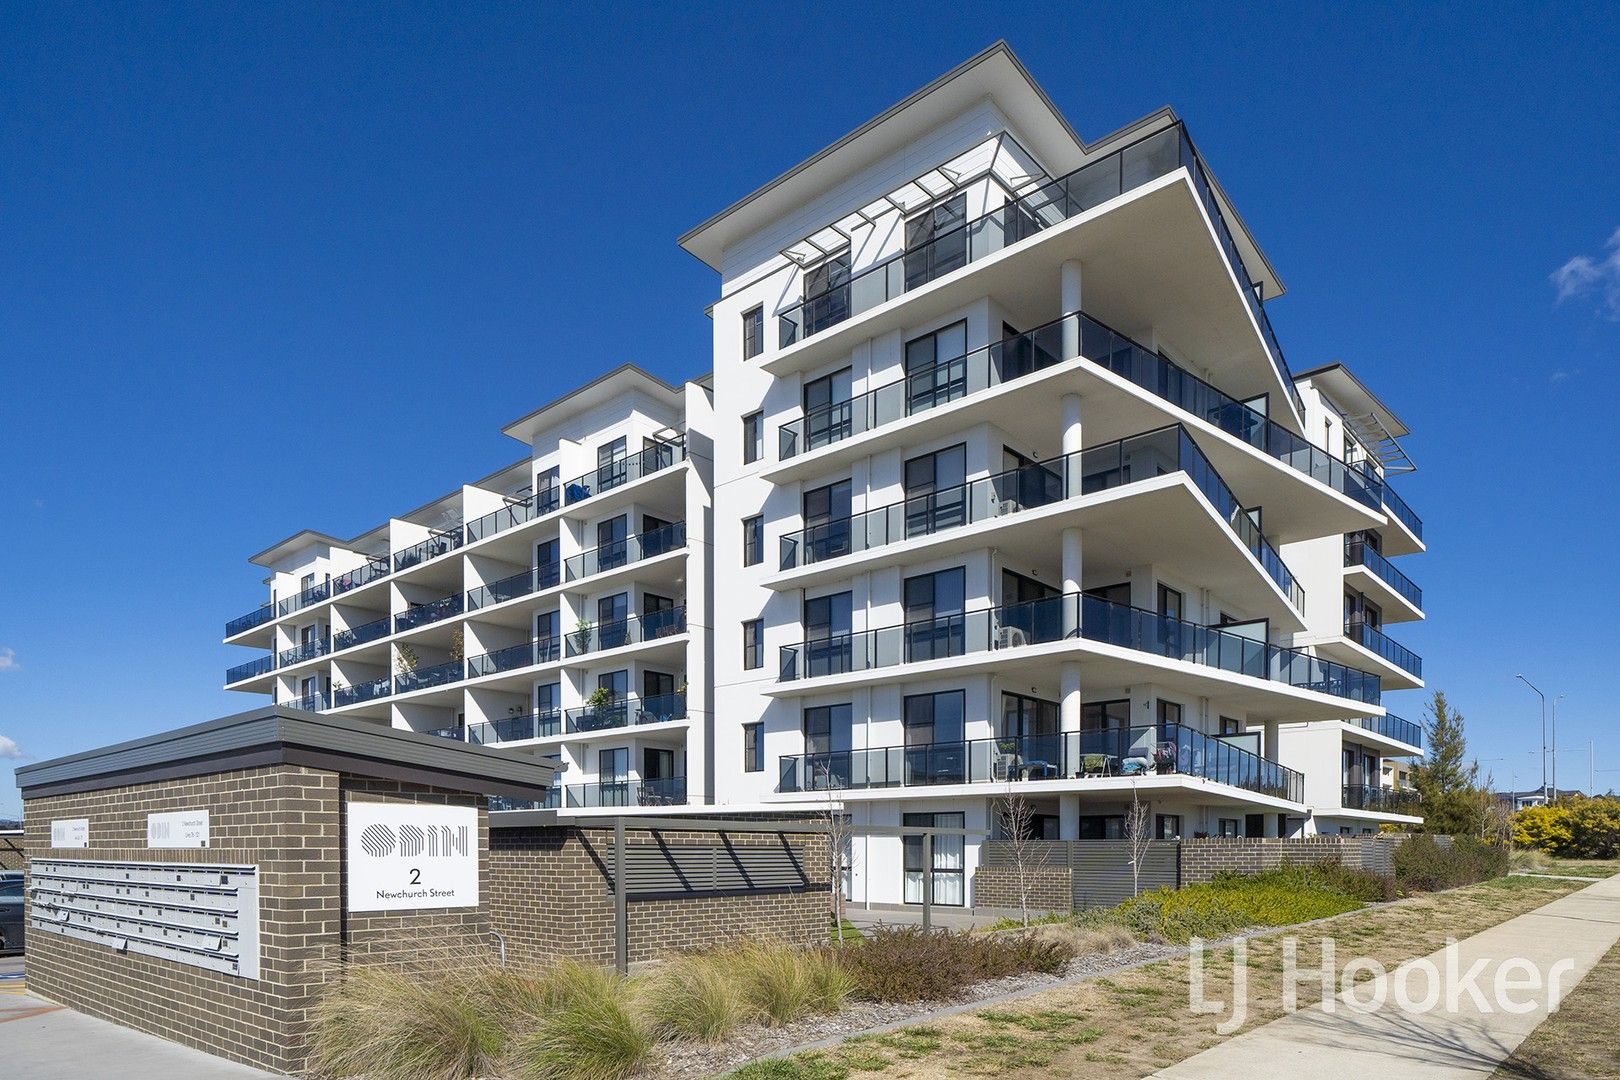 114/2 Newchurch Street, Coombs ACT 2611, Image 0